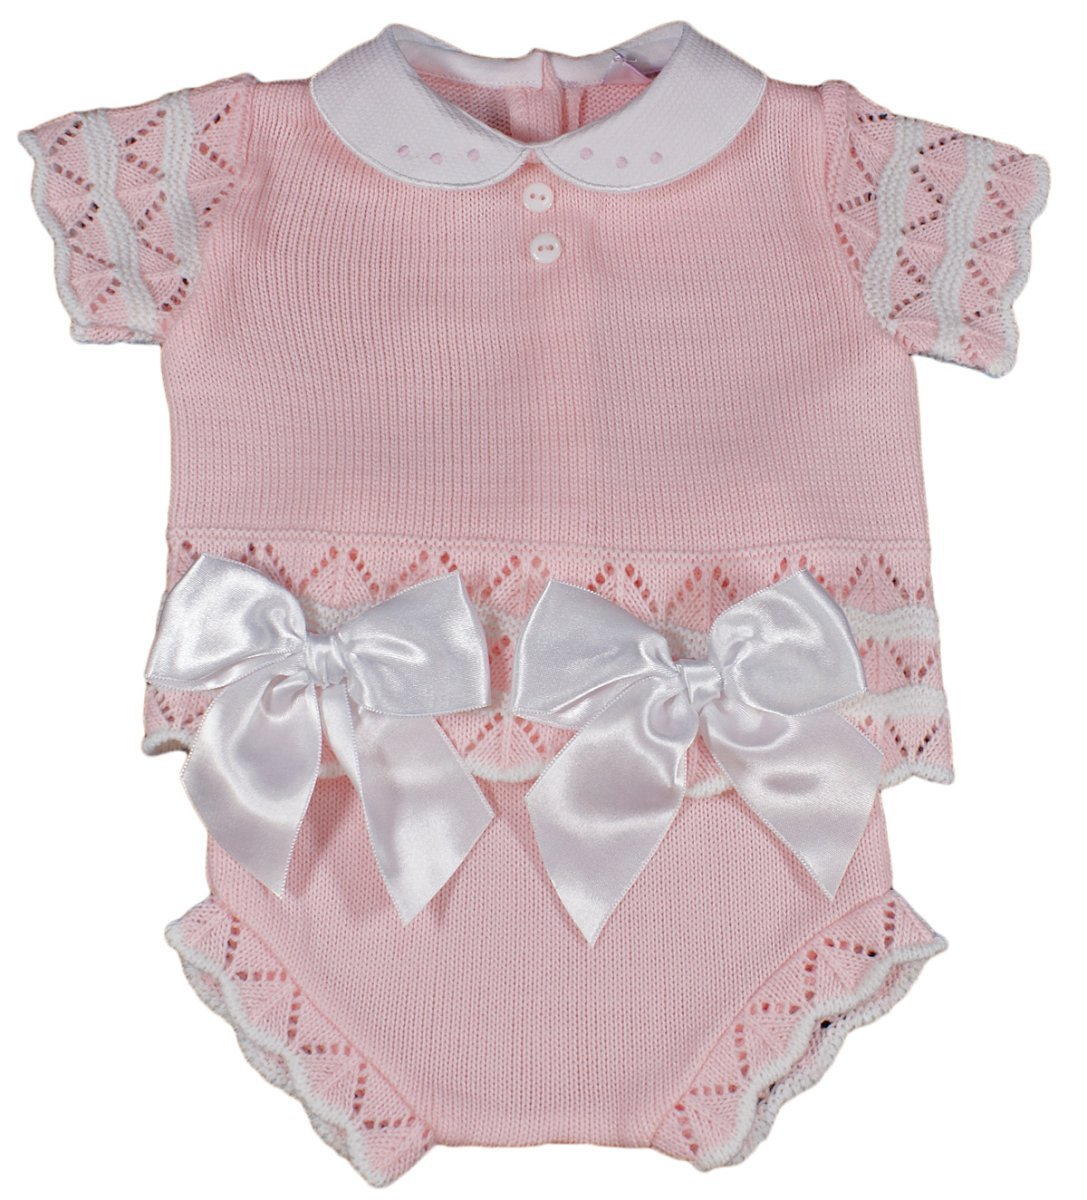 Baby Girl Spanish Style Jam Pants and Top Set